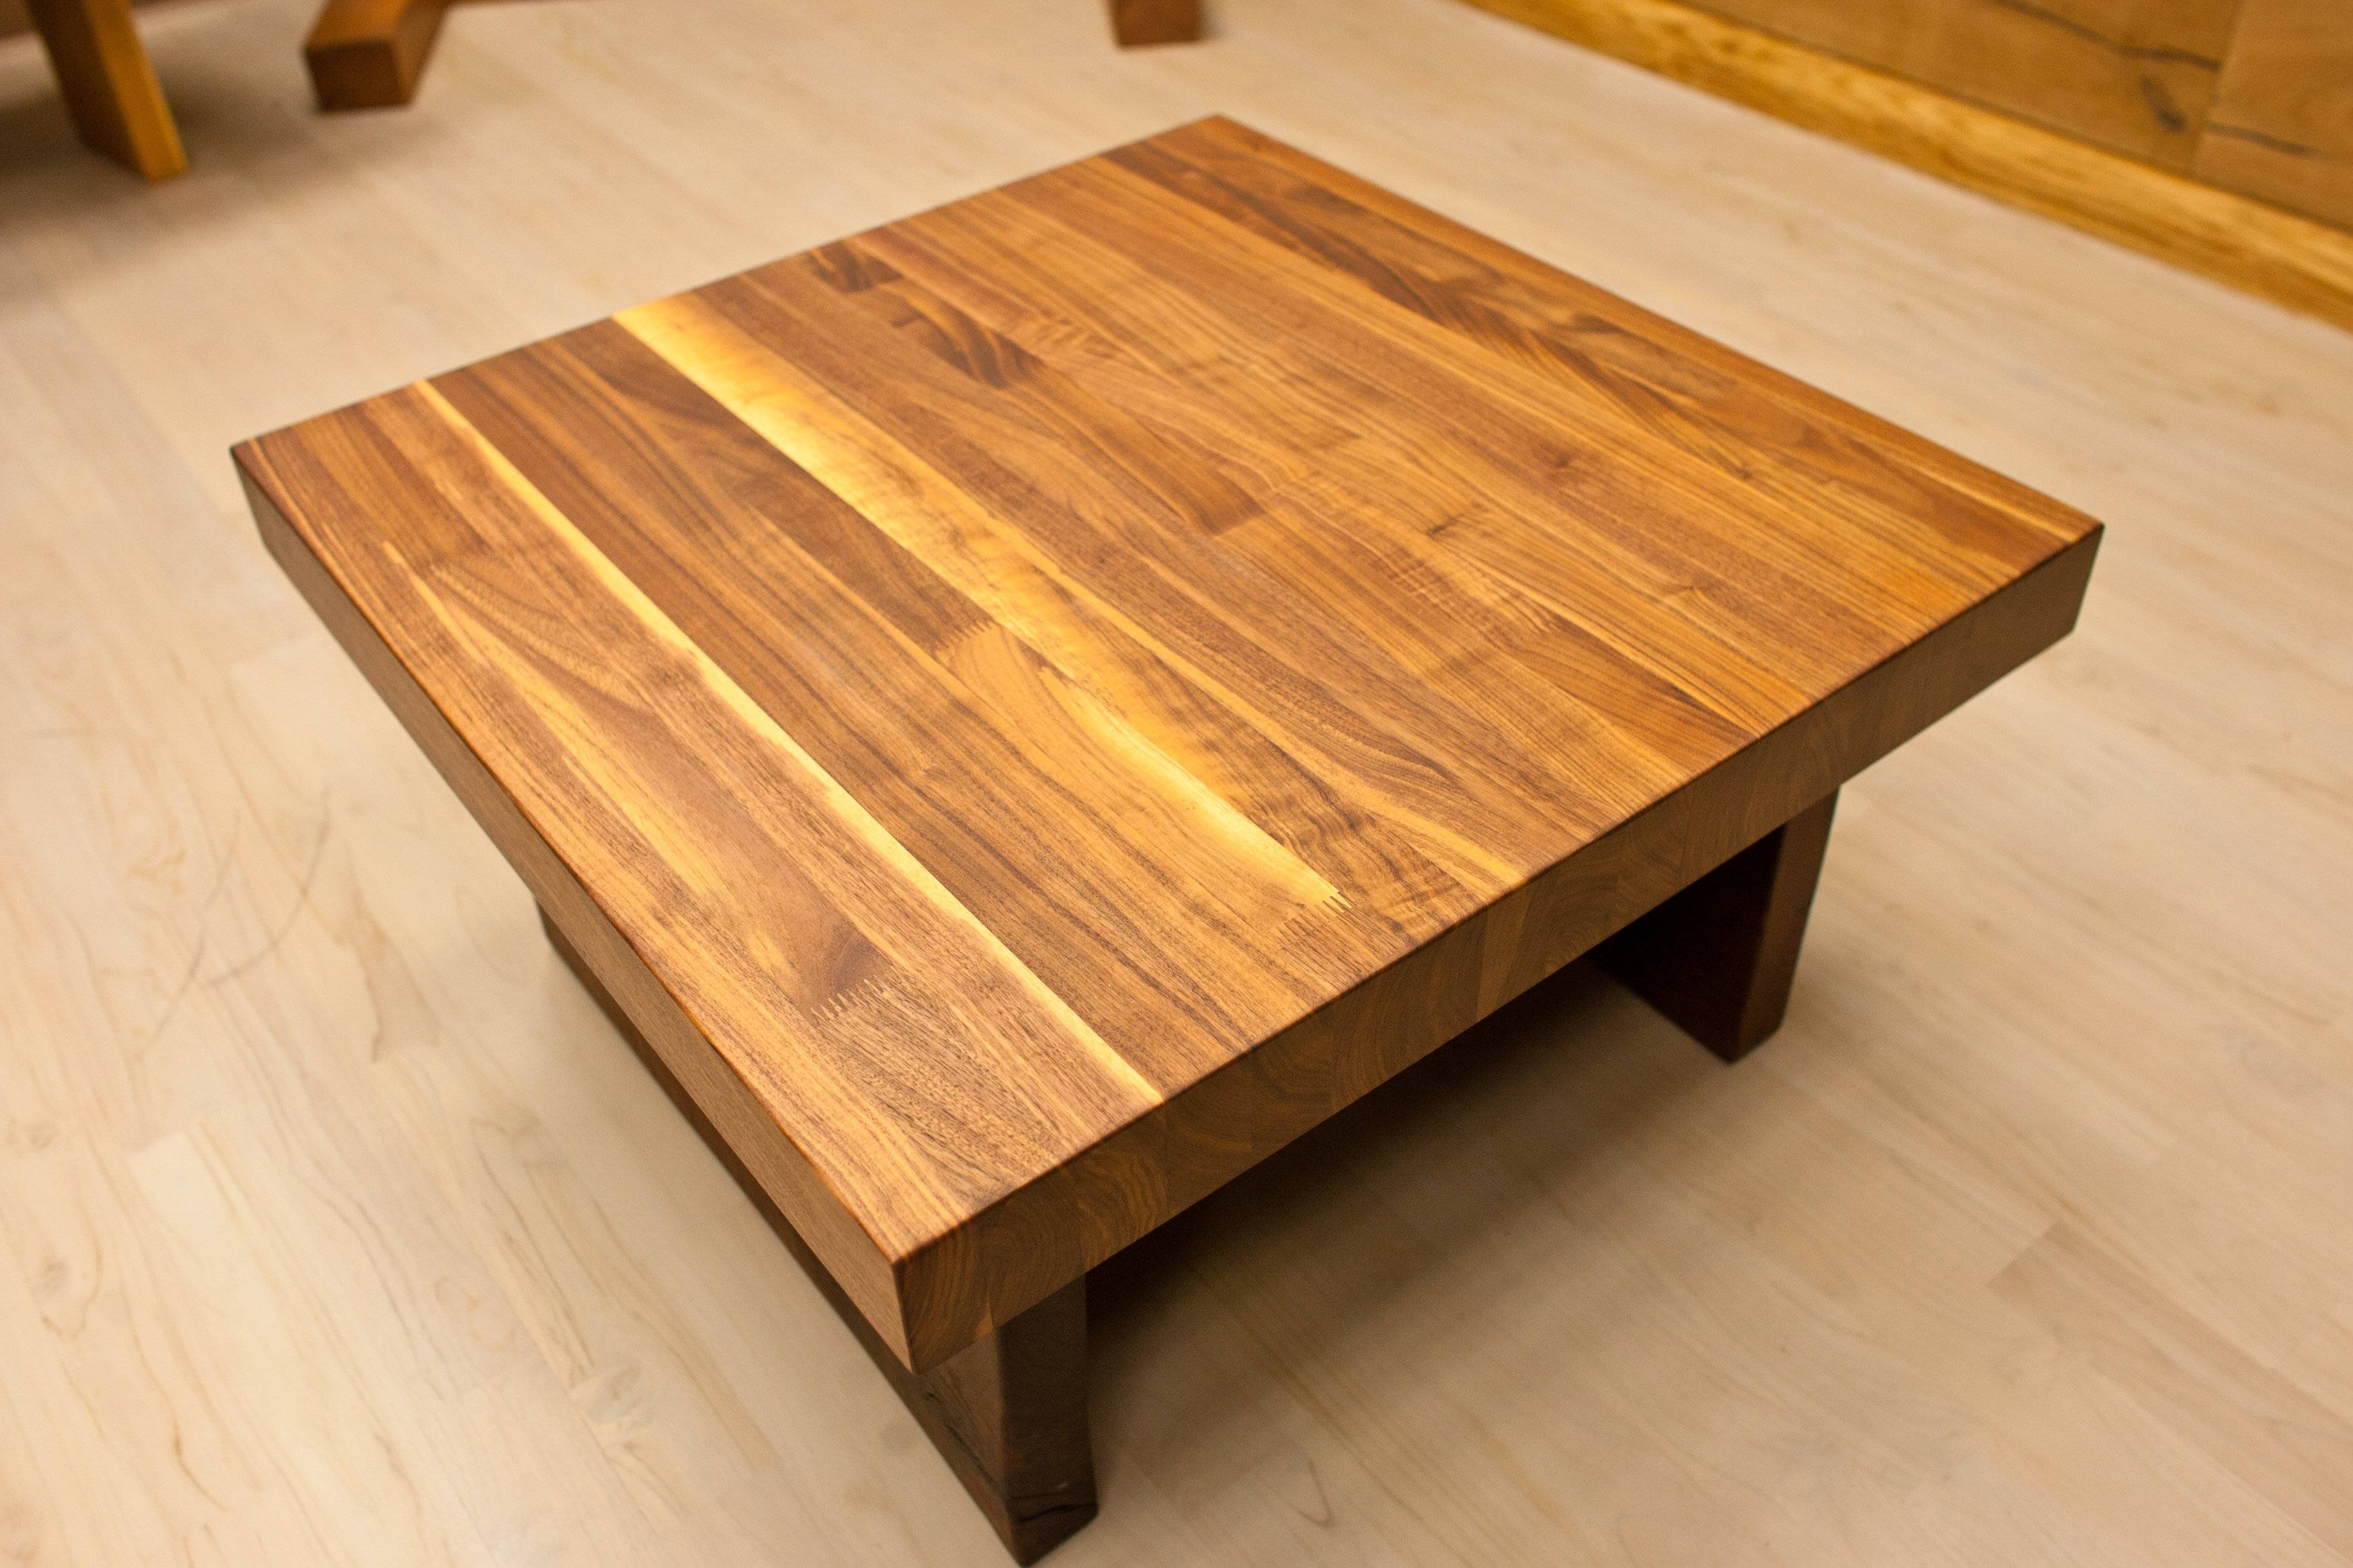 Small And Low Square Wooden Butcher Block Coffee Table For Small for Big Low Coffee Tables (Image 29 of 30)